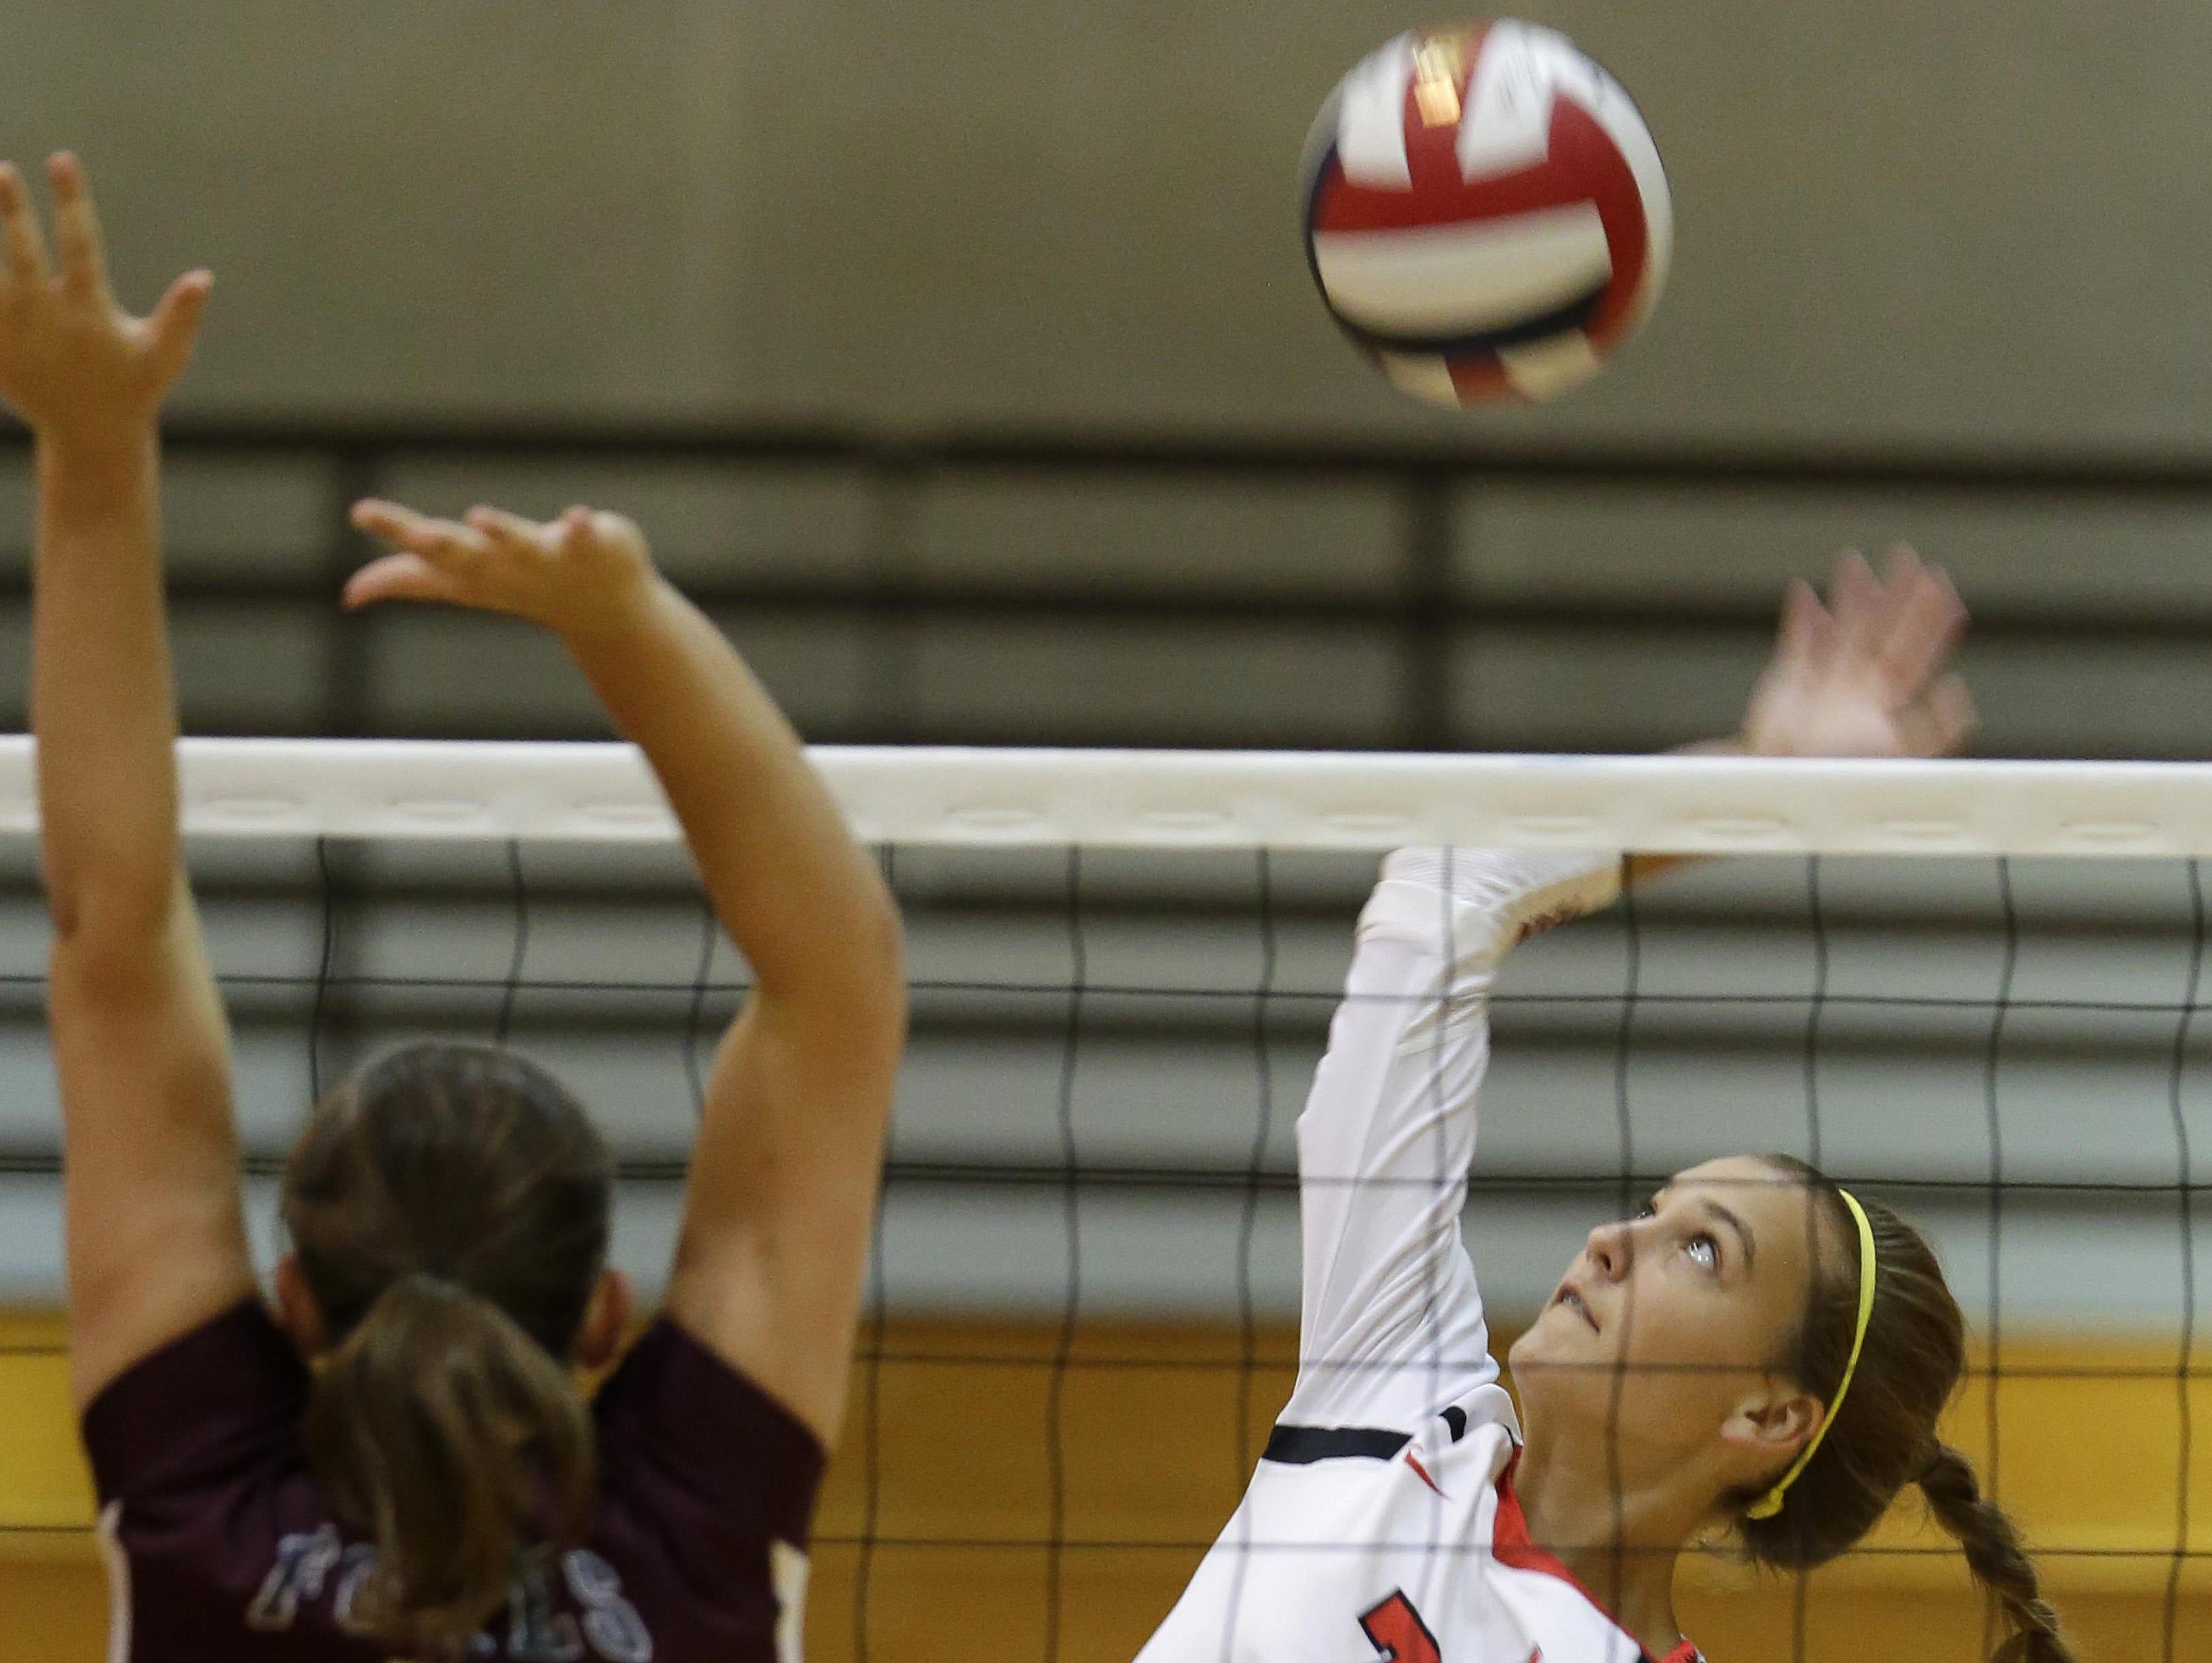 Neenah High School's No. 7, Addie Barnes, spikes against Fox Valley Lutheran High School's No. 9, Alexis Uitenbroek, during the 2015 Battle of the Valley volleyball invitational on Aug. 25 in Neenah.